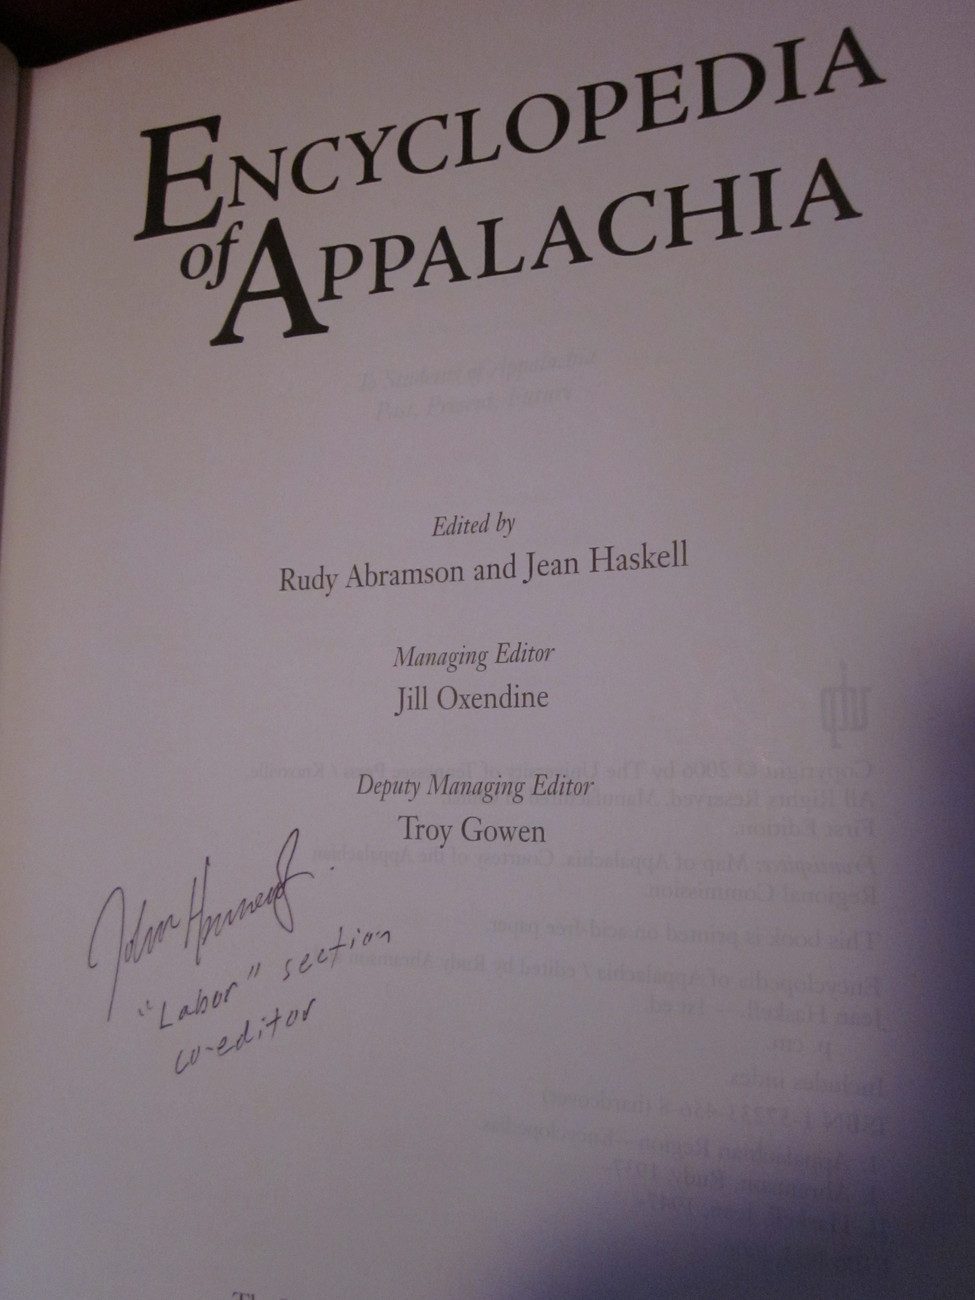 Encyclopedia of Appalachia by Rudy Abramson and Jean Haskell - Exhaustive